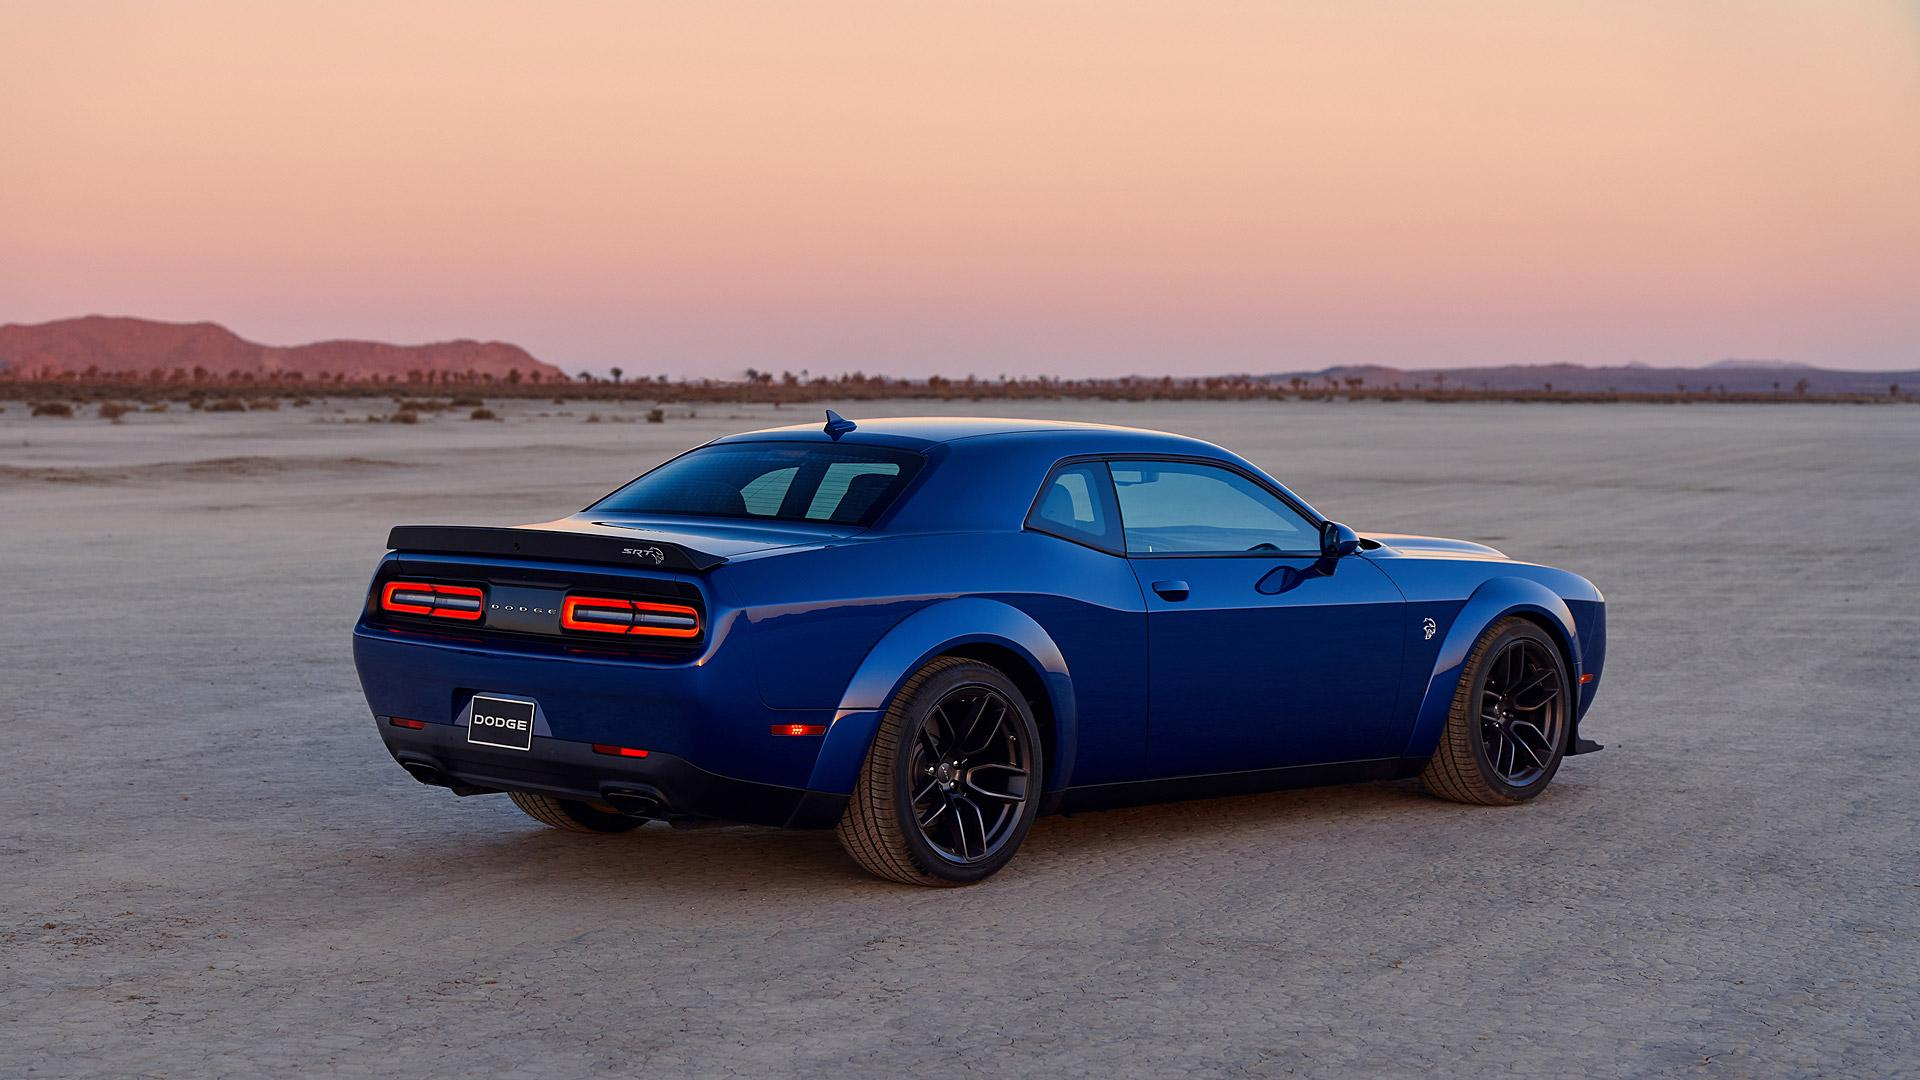 2019 Dodge Challenger SRT Hellcat Wallpapers & HD Image